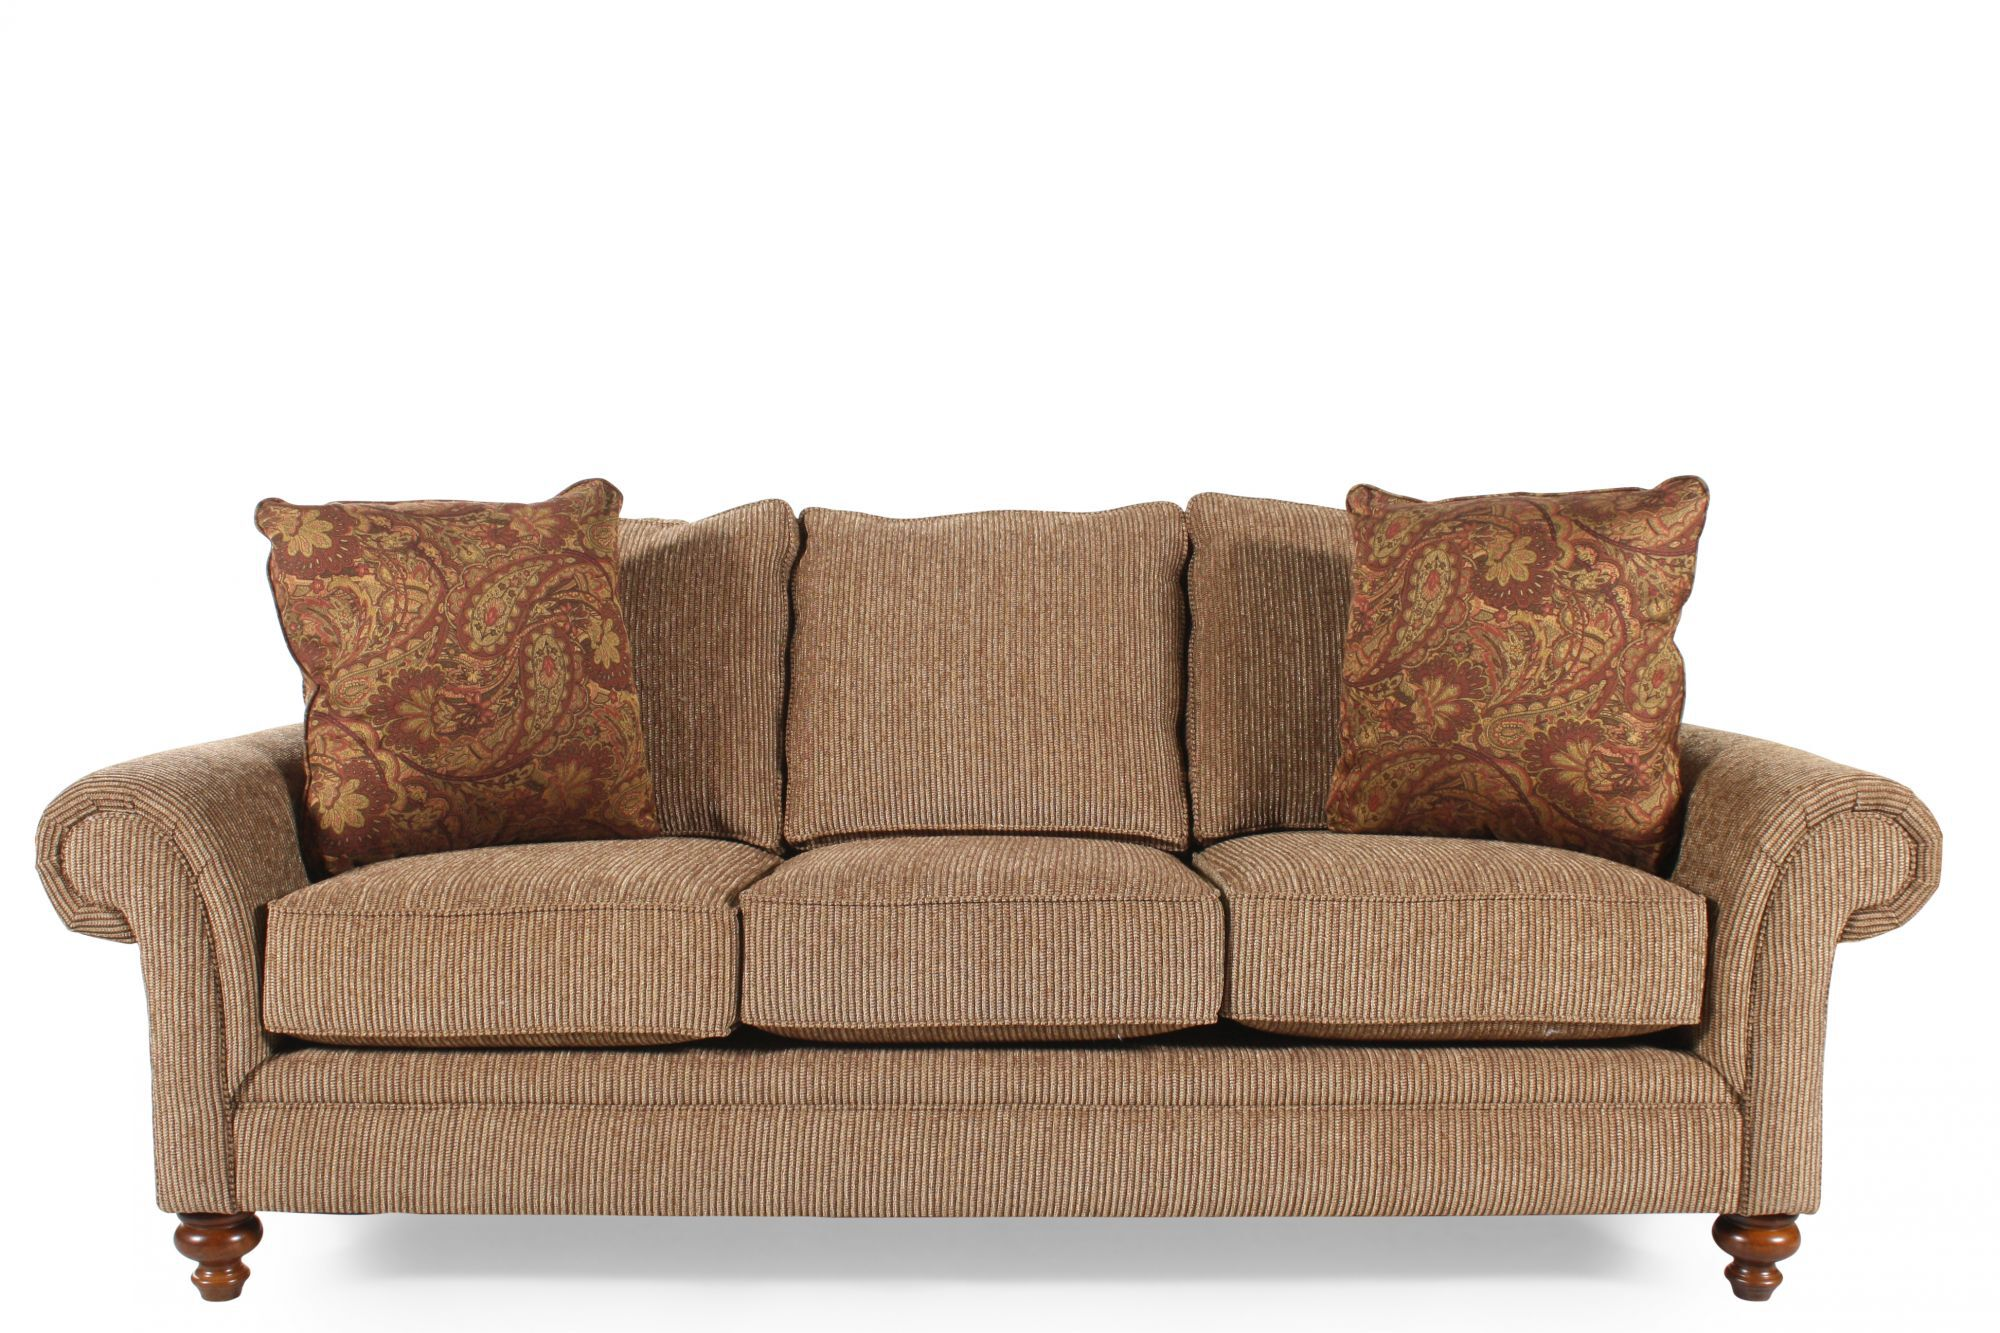 Corduroy Casual 88 Sofa In Nut Brown Video